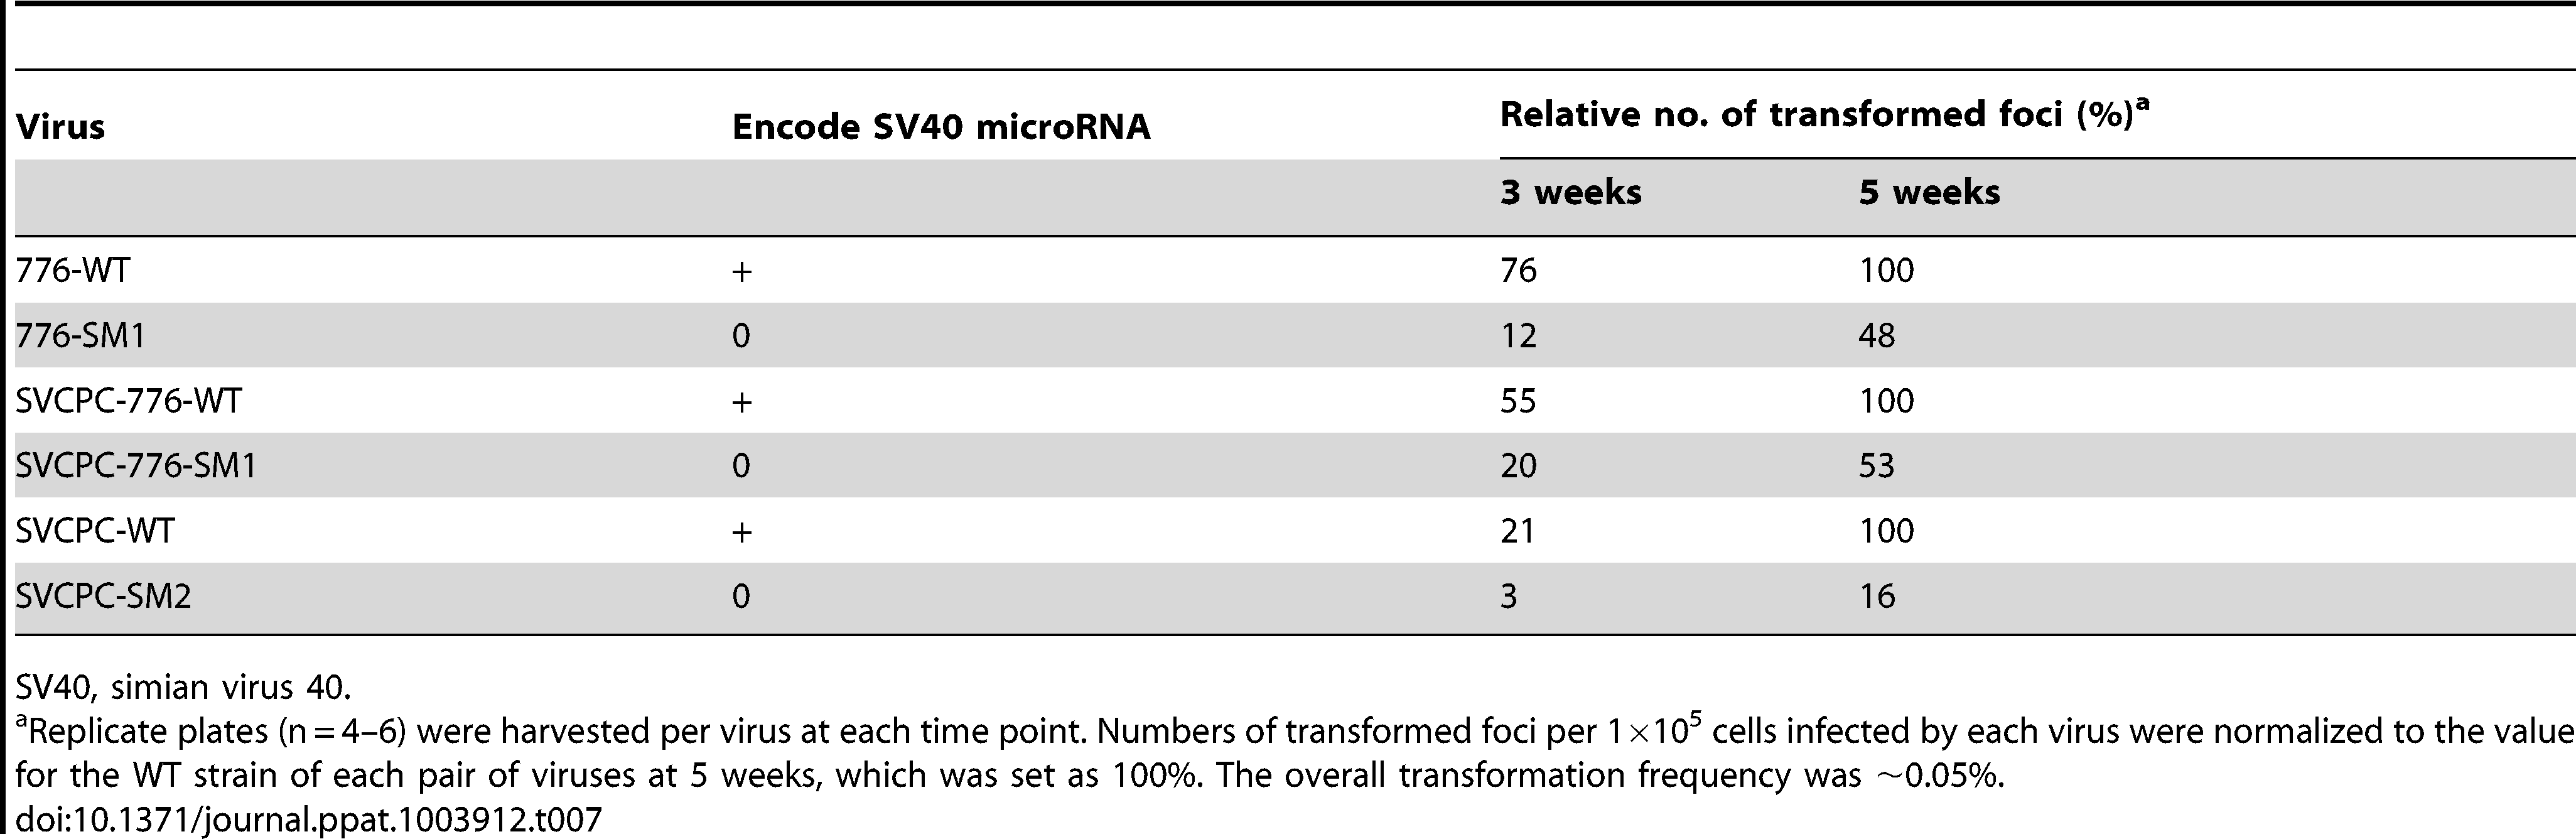 Transformation of primary mouse embryo fibroblasts by SV40 parental and microRNA-negative viruses.